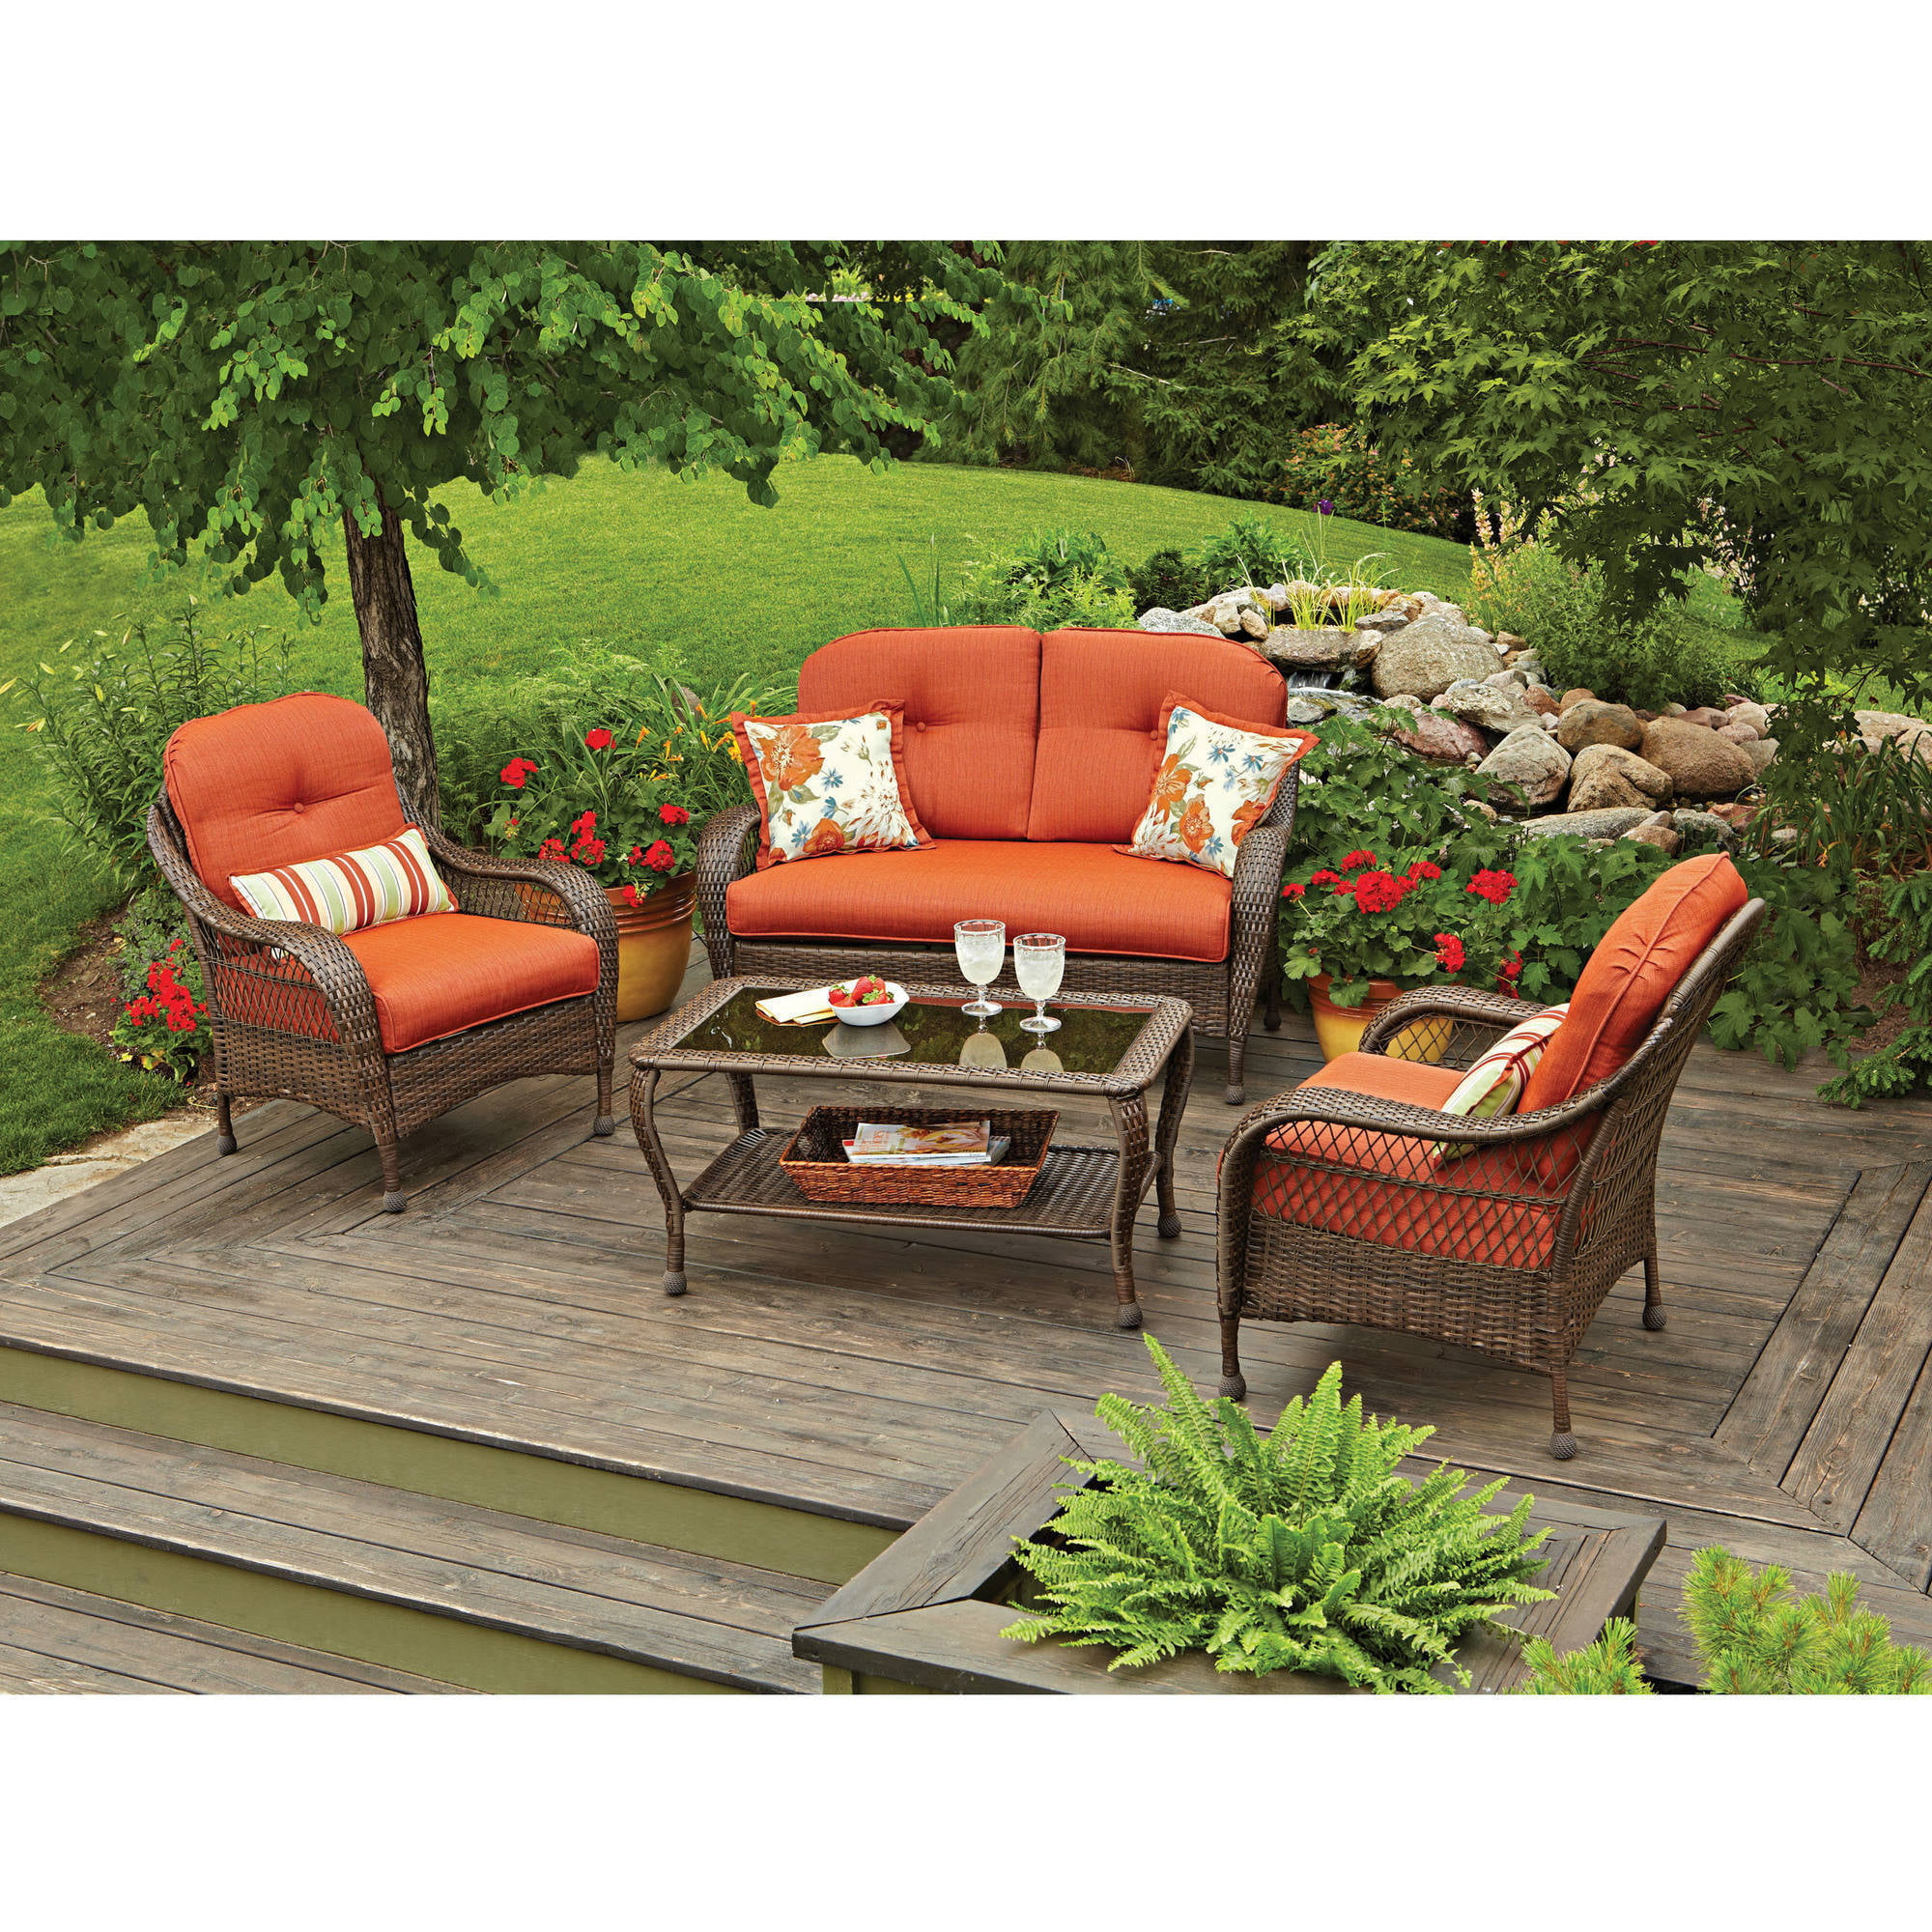 Garden Furniture 4 U Ltd better homes and gardens azalea ridge 4-piece patio conversation